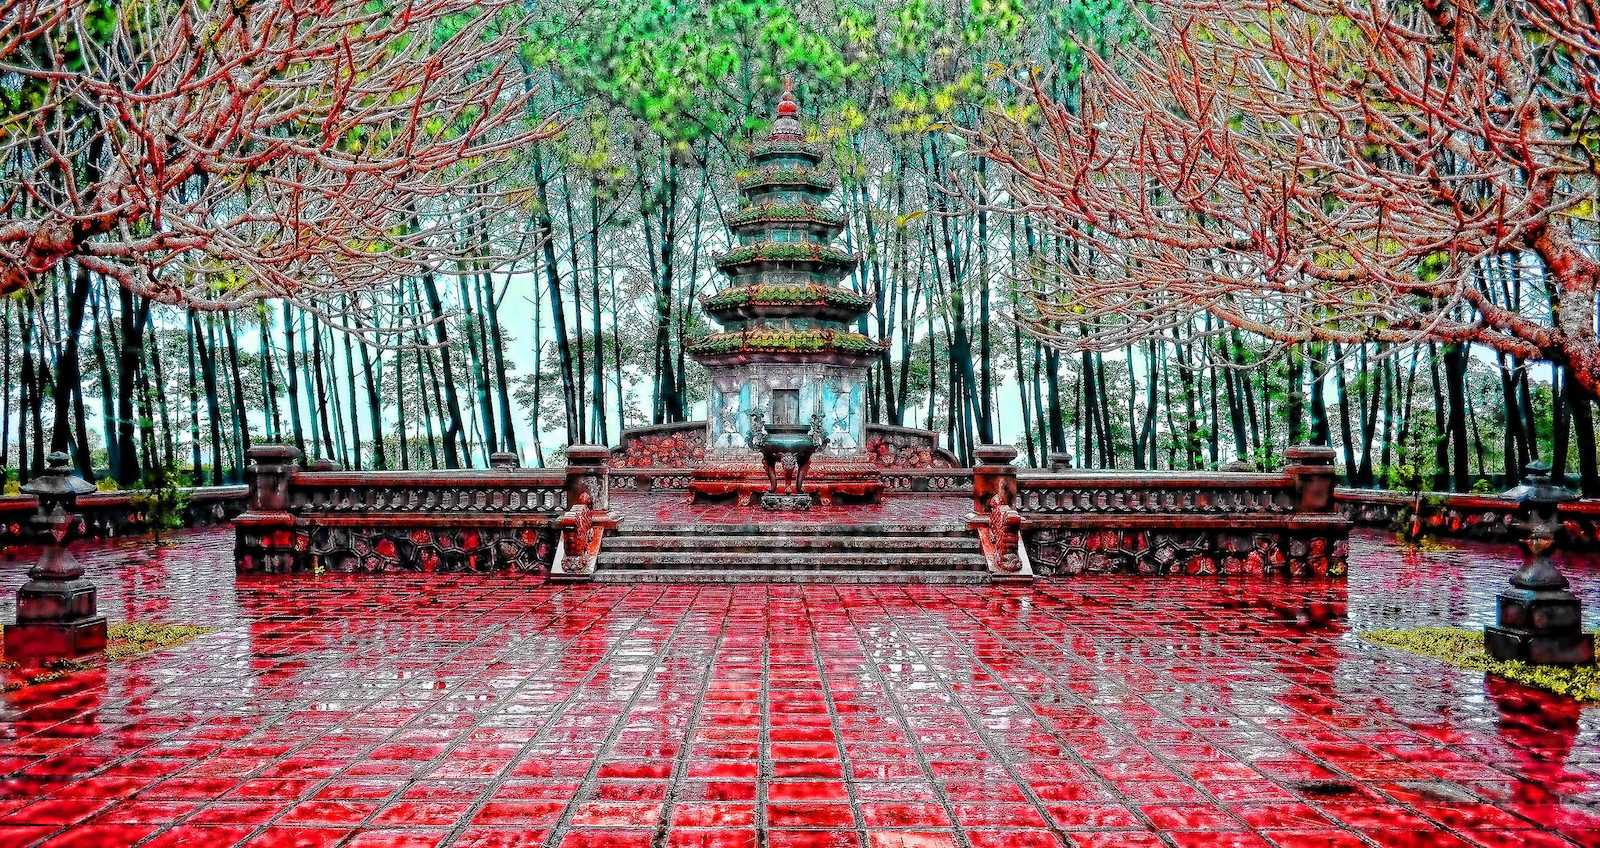 Image of a red topaz temple in Hue, Vietnam after rain